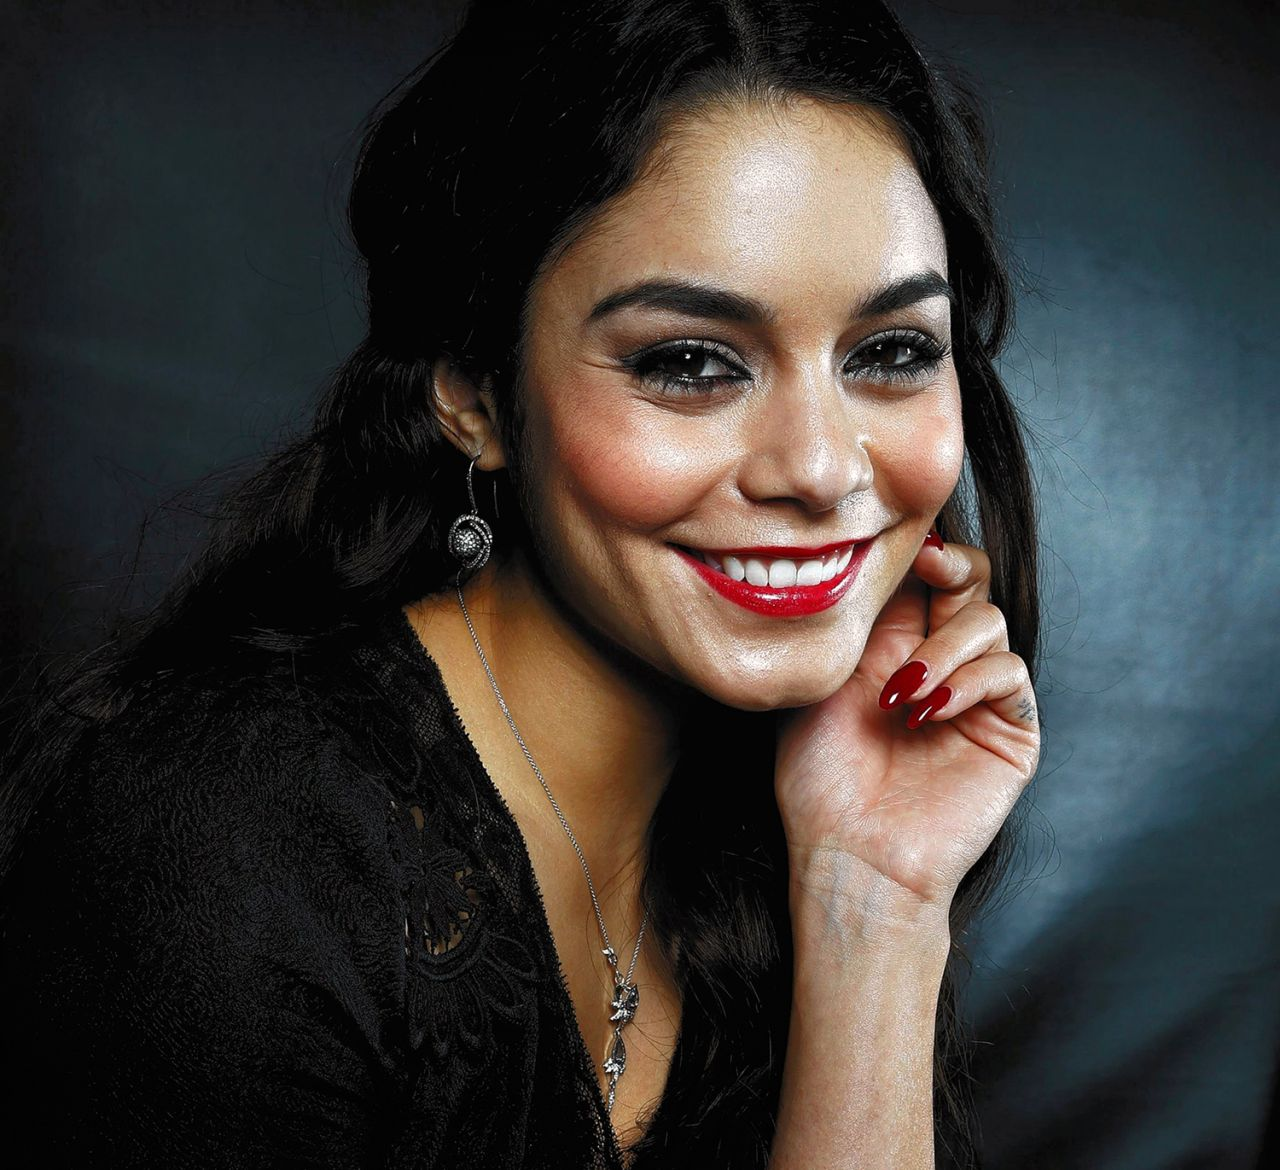 Vanessa Hudgens - Photoshoot For LA TIMES (2014)